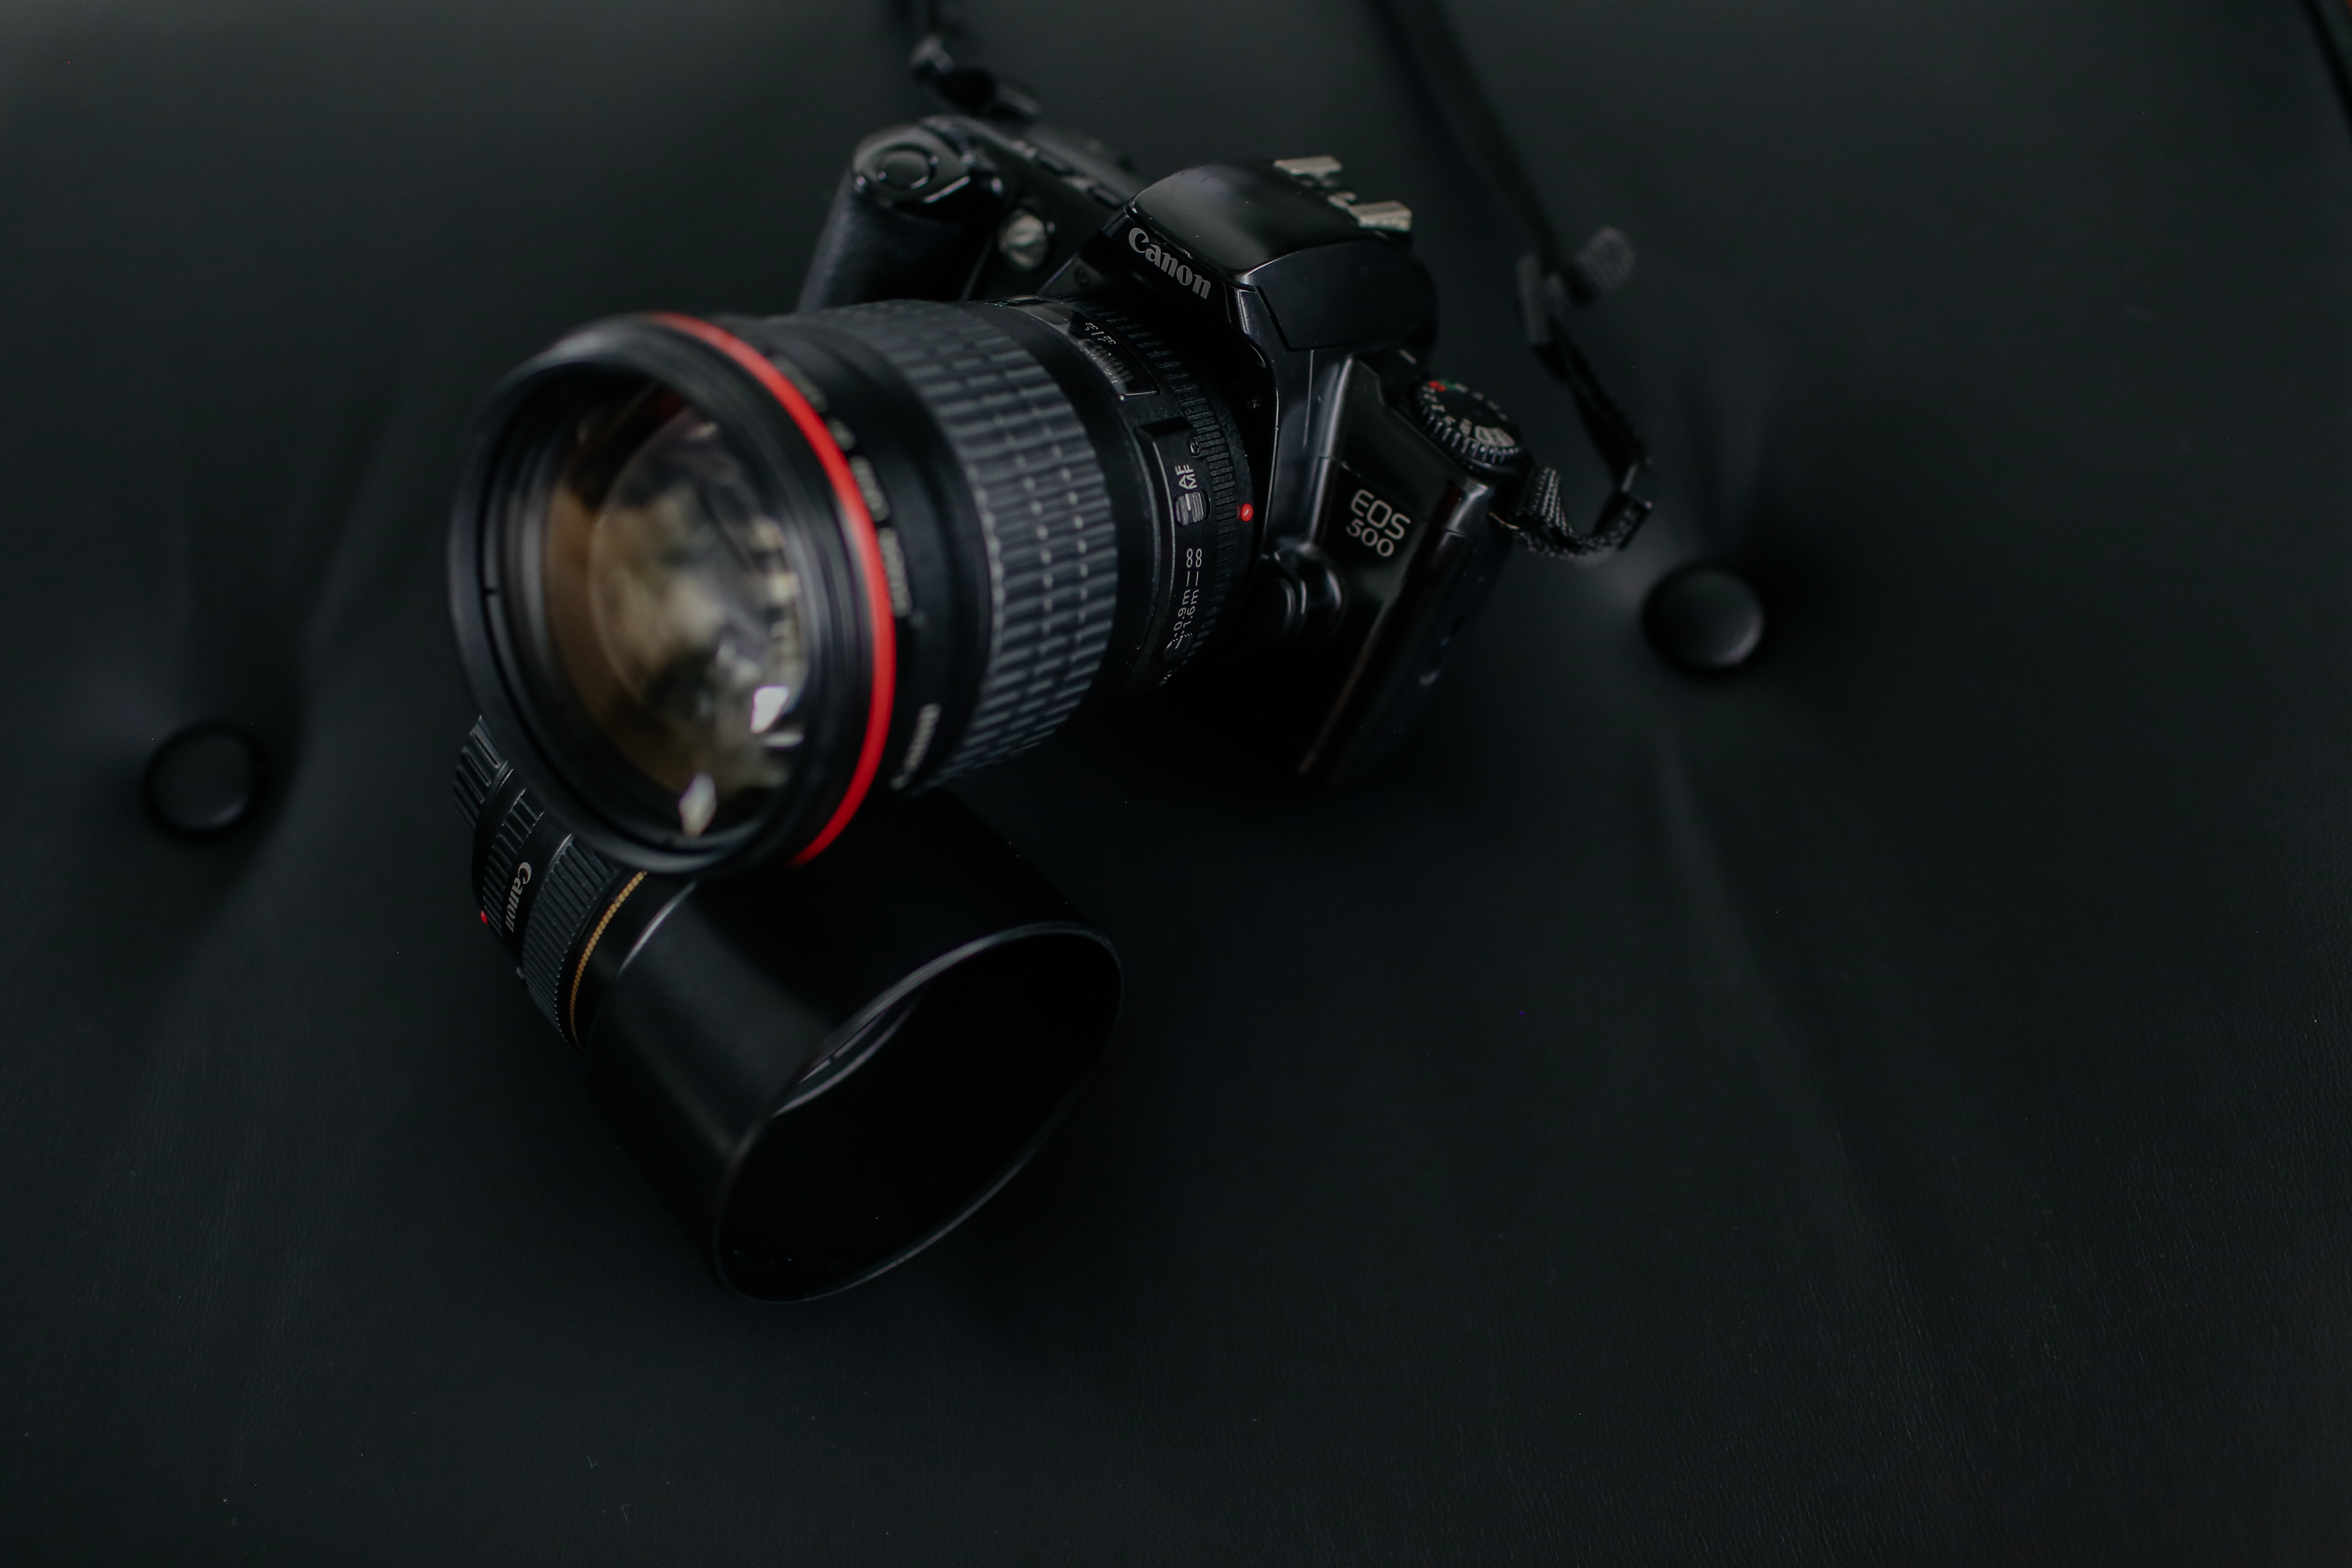 Canon EOS camera with lens on black seat